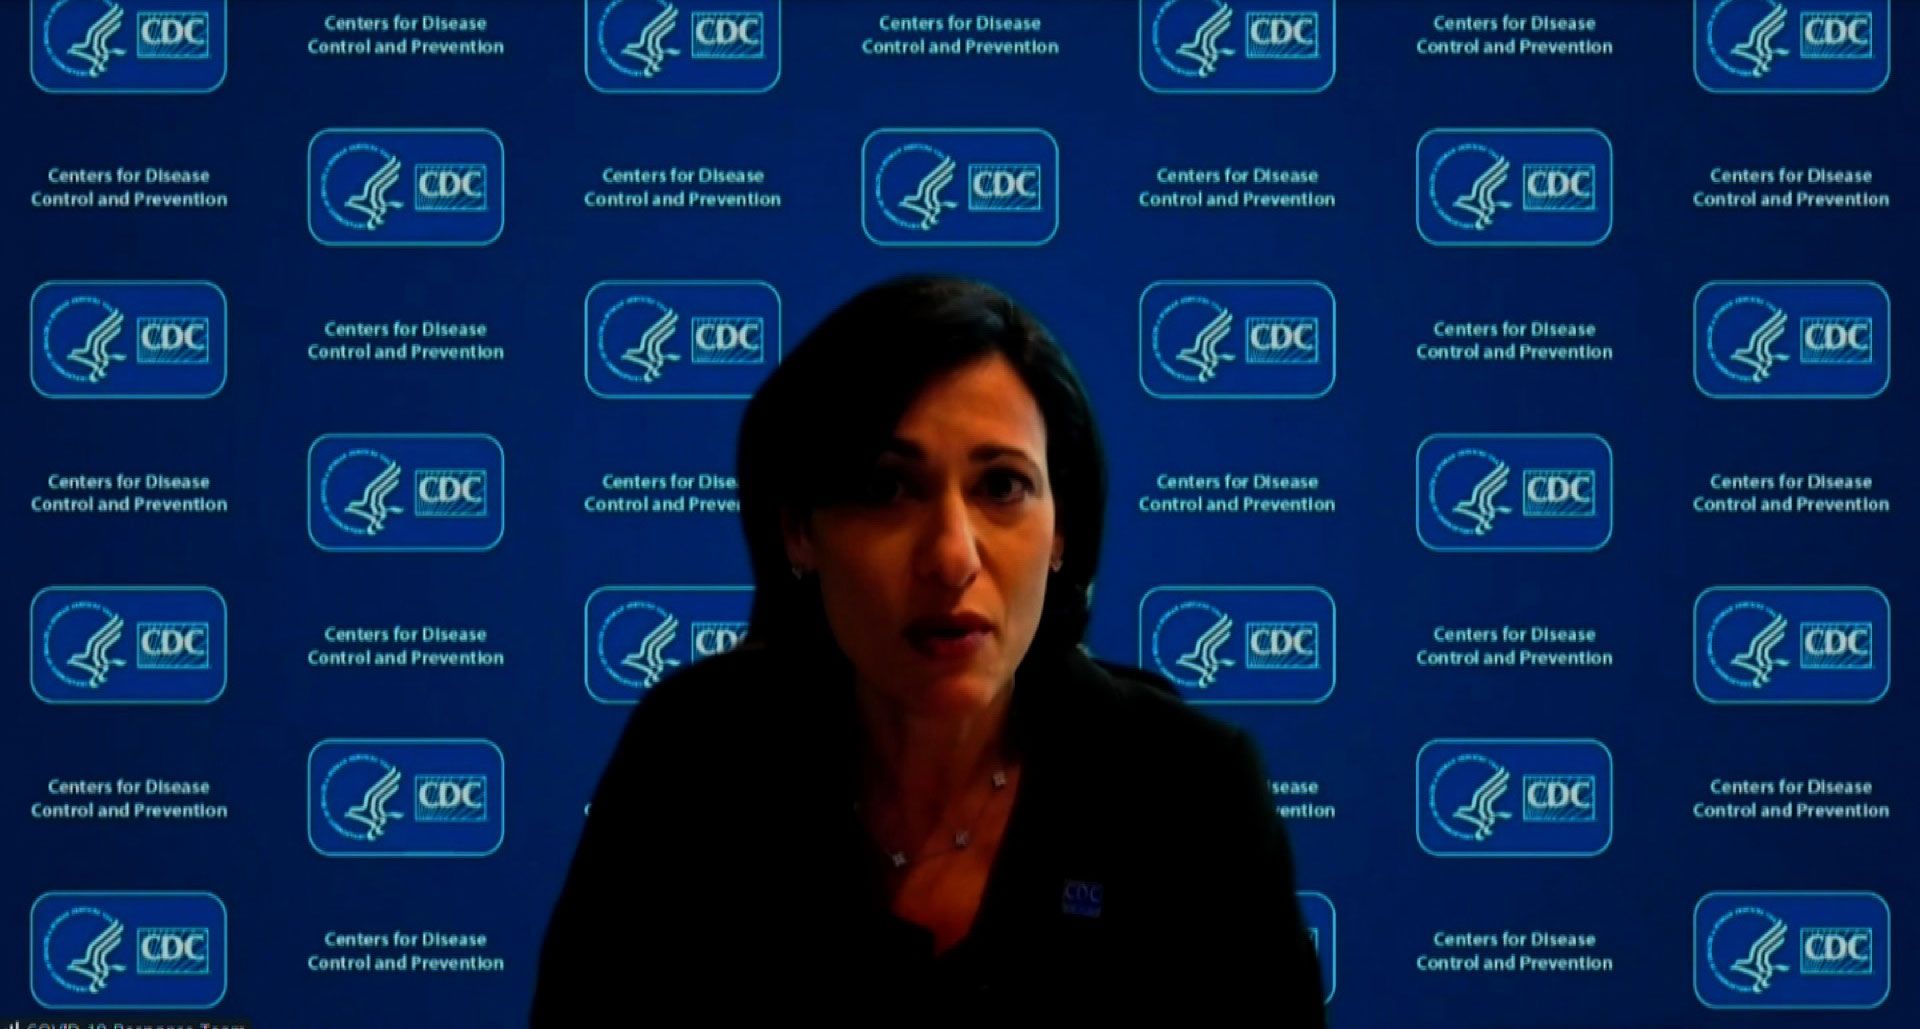 Dr. Rochelle Walensky, Director of the US Centers for Disease Control and Prevention, on January 27.